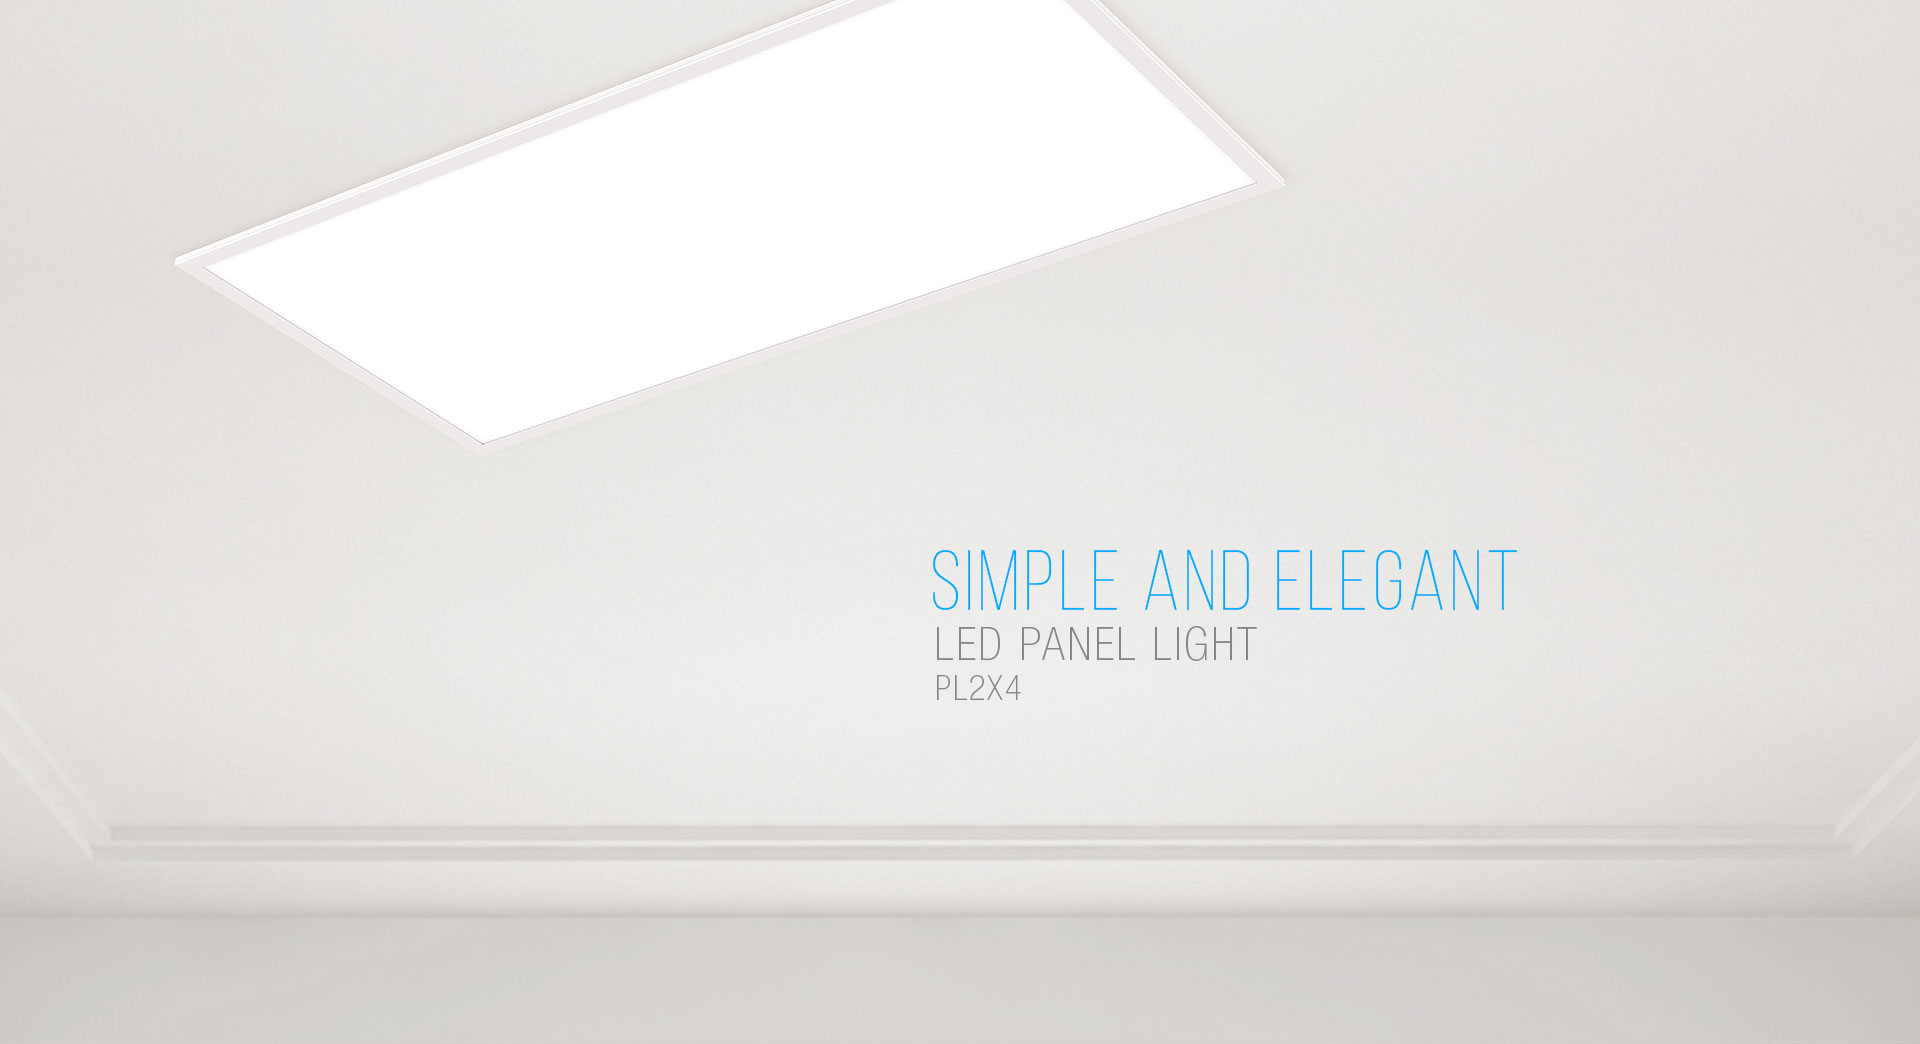 PL2x4 LED Surface Panel Light_01